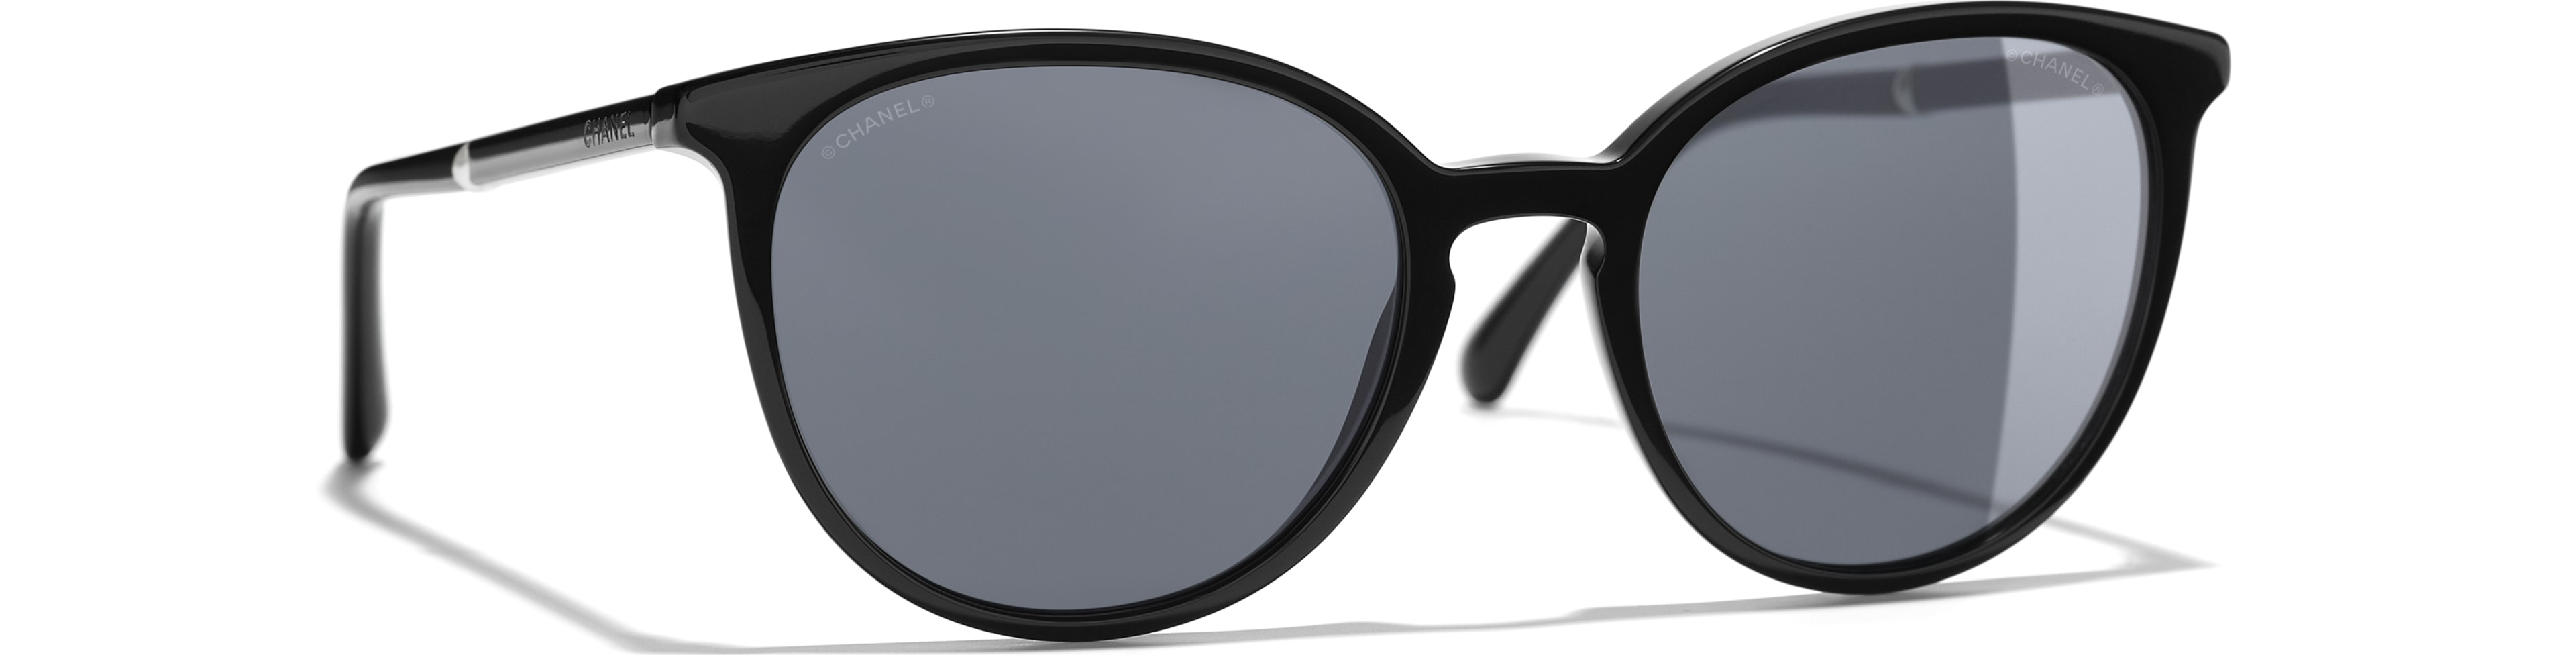 Acetate & Imitation Pearls black frame. Grey gradient lenses